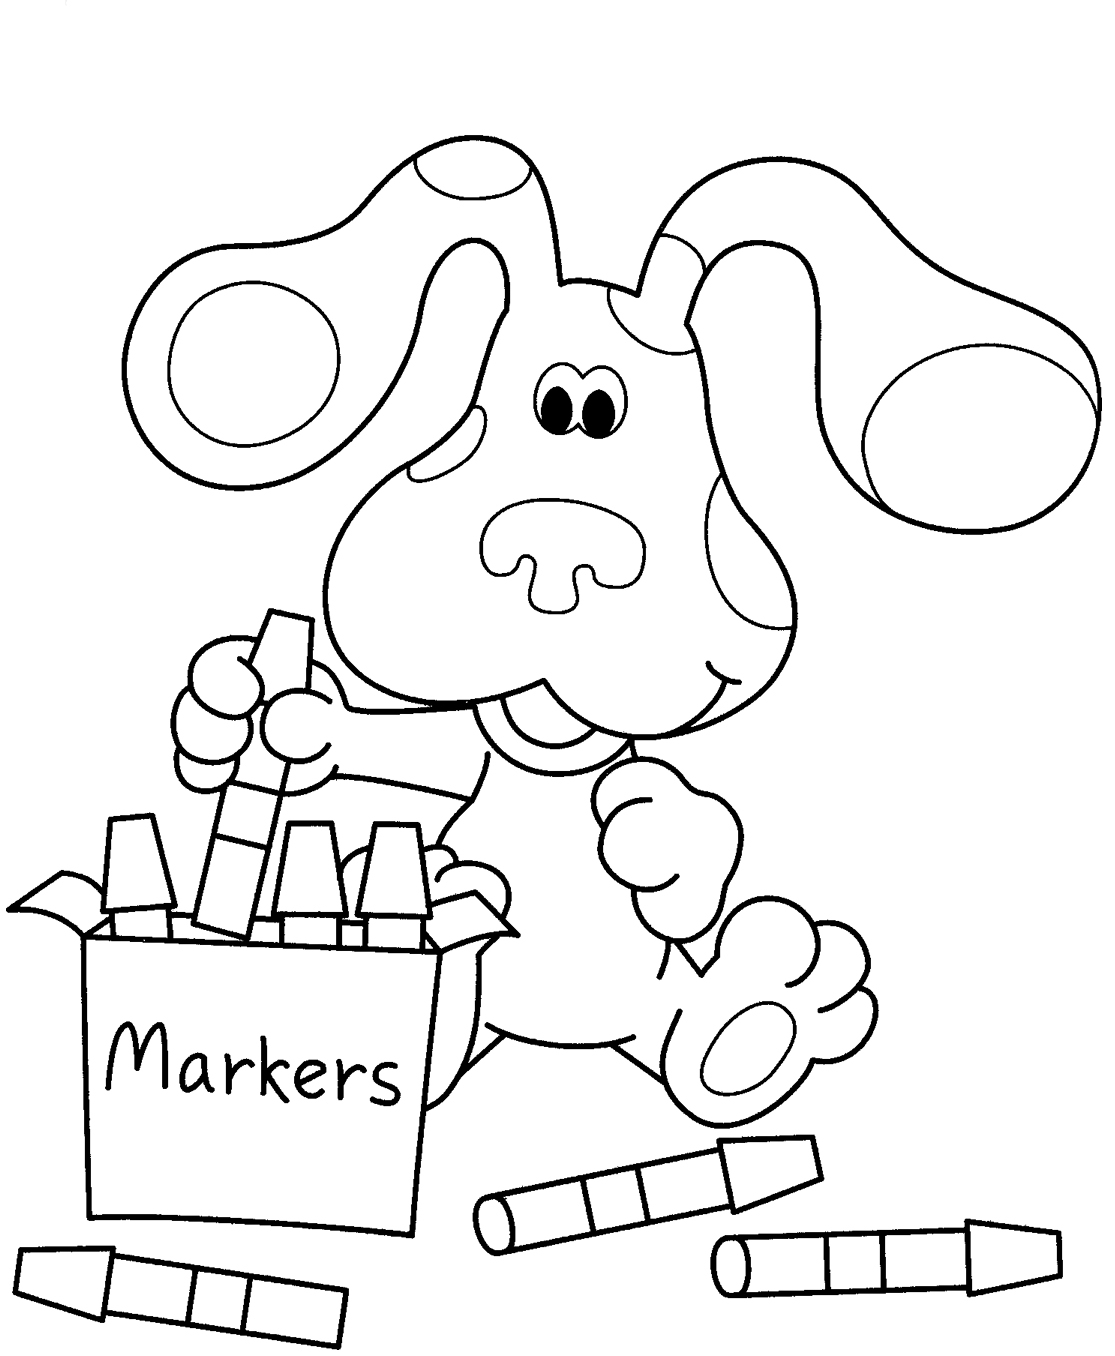 Printable coloring pages nick jr - Download Nick Jr Coloring Pages 14 Print